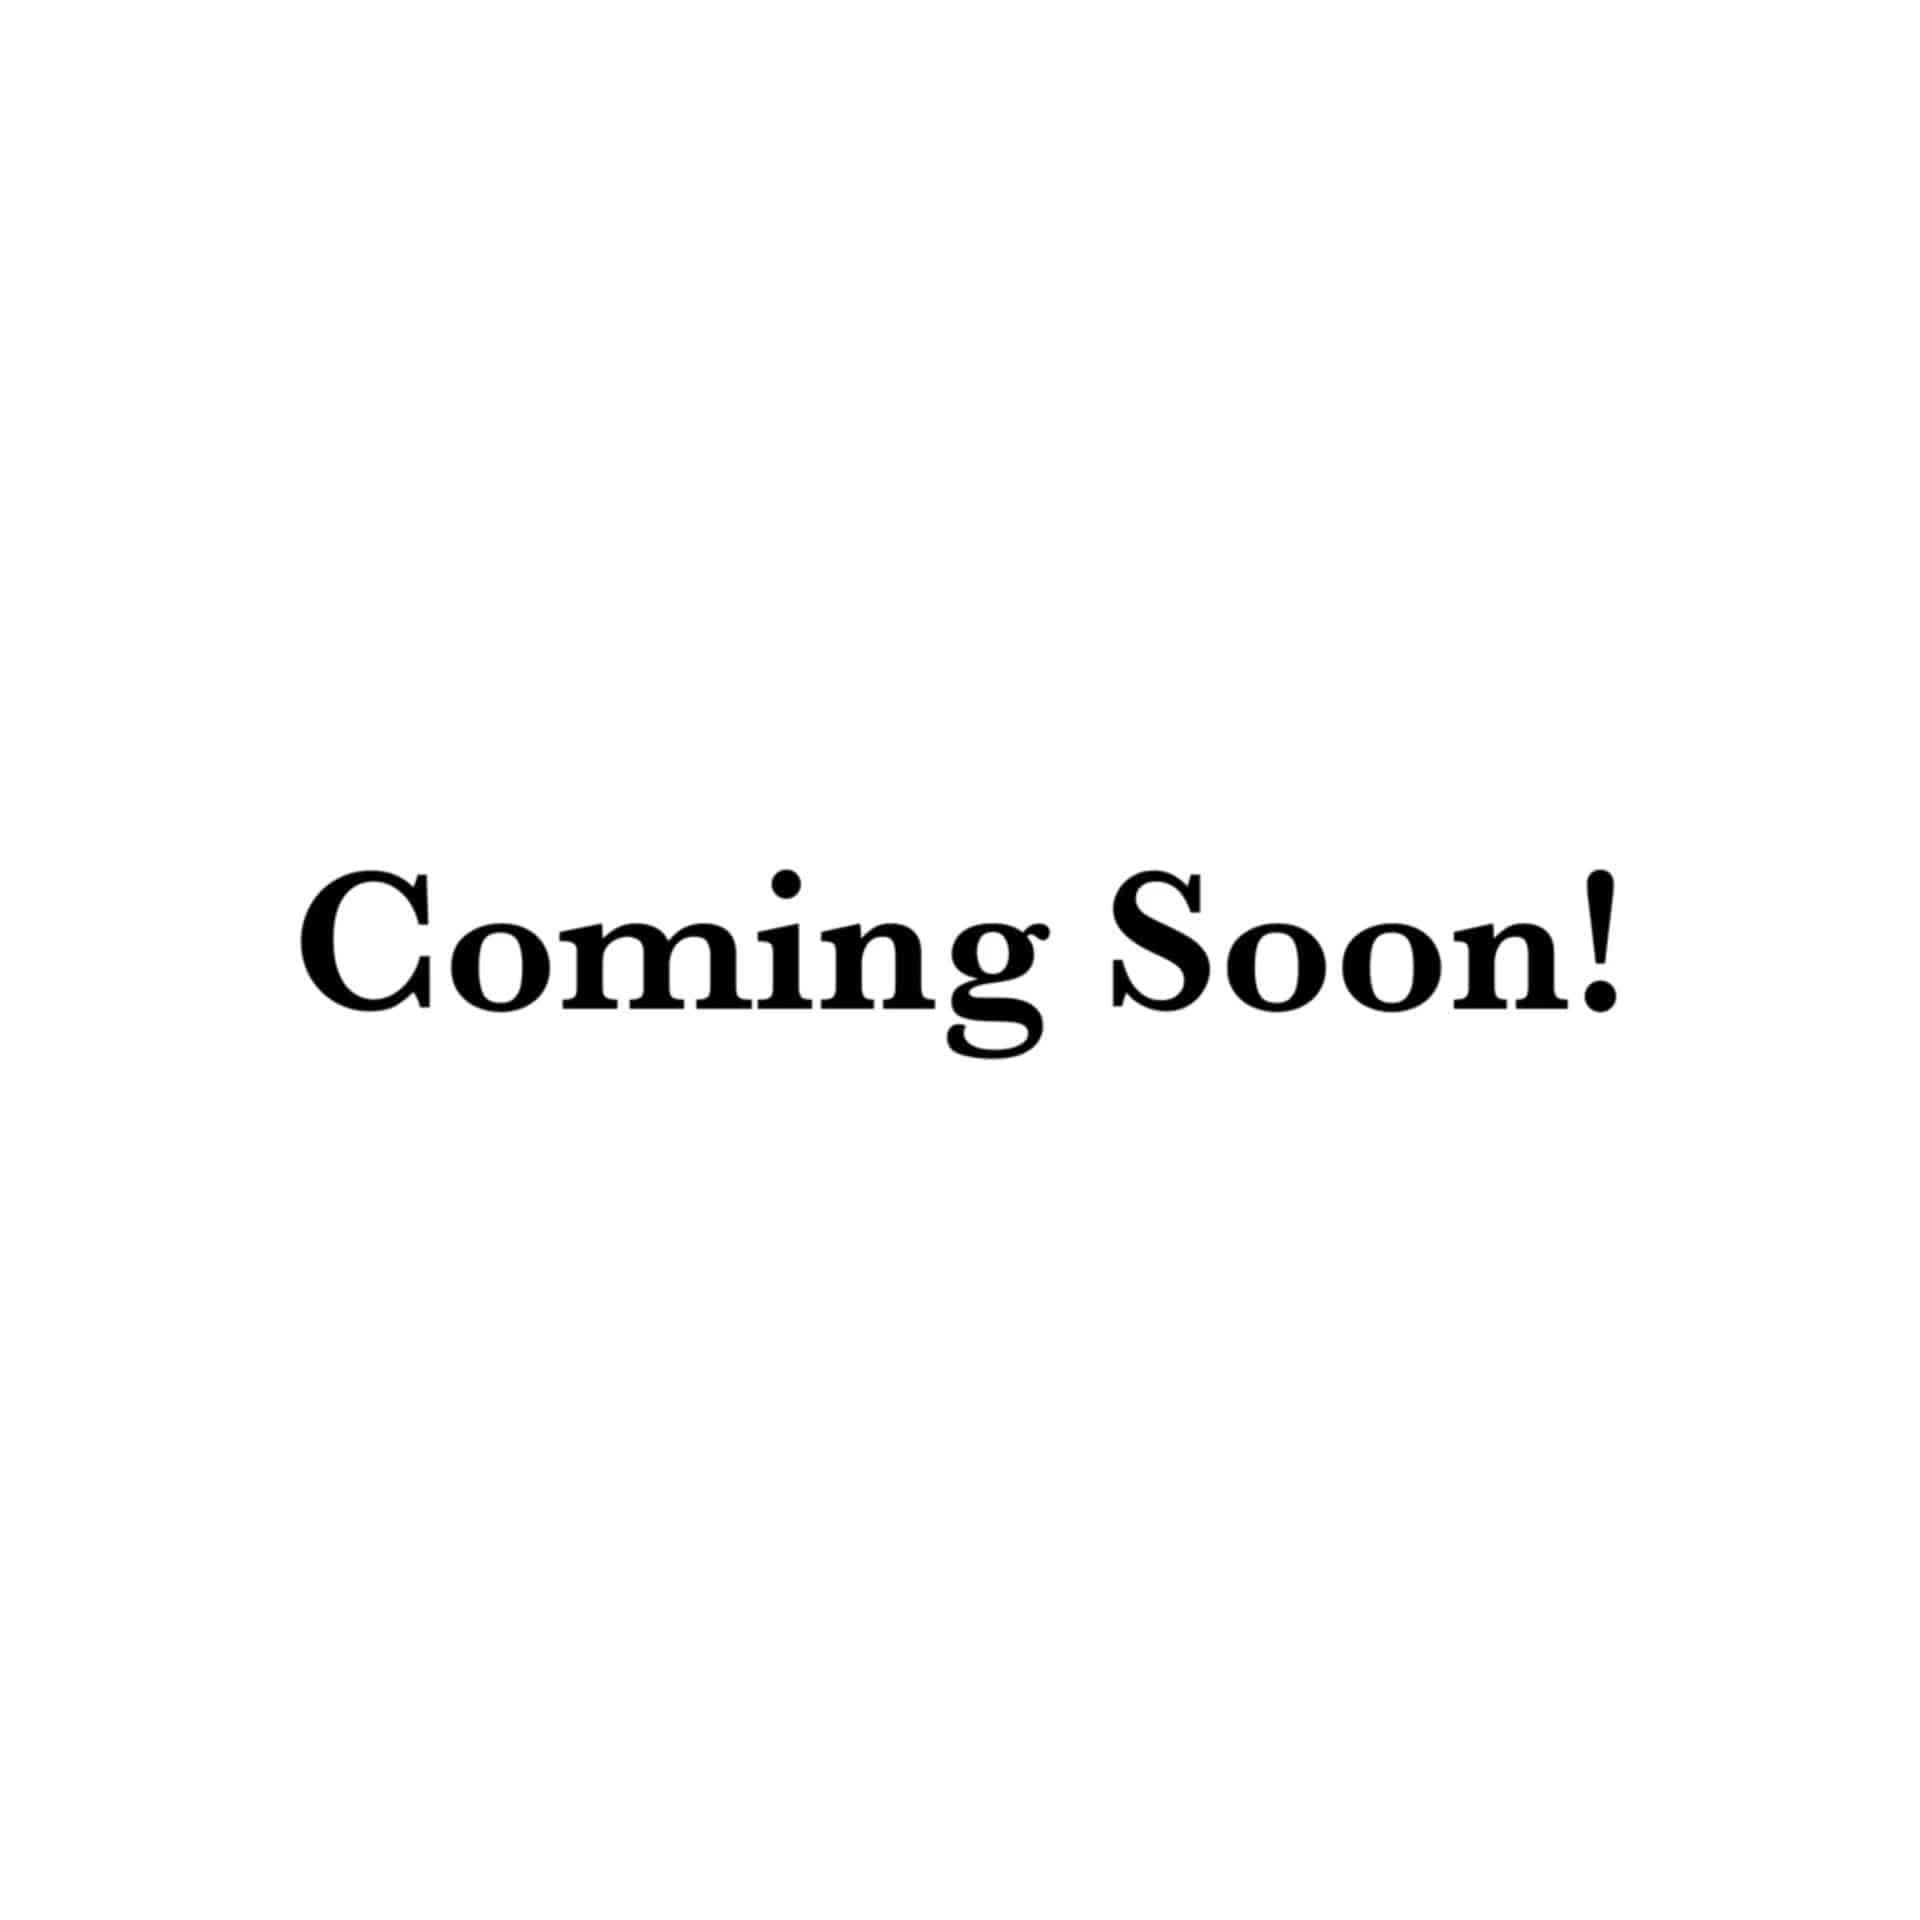 Exciting News! Our new range of Home Decor products will soon be LIVE.  #homedecor  #home  #people  #products  #design-style  #new  #comingsoon  #different  #exciting  #lifestyle  #lifestyleblogger  #quirky #view  #followforfollow  #likeforfollow  #onlineshopppping  #blogger  #india